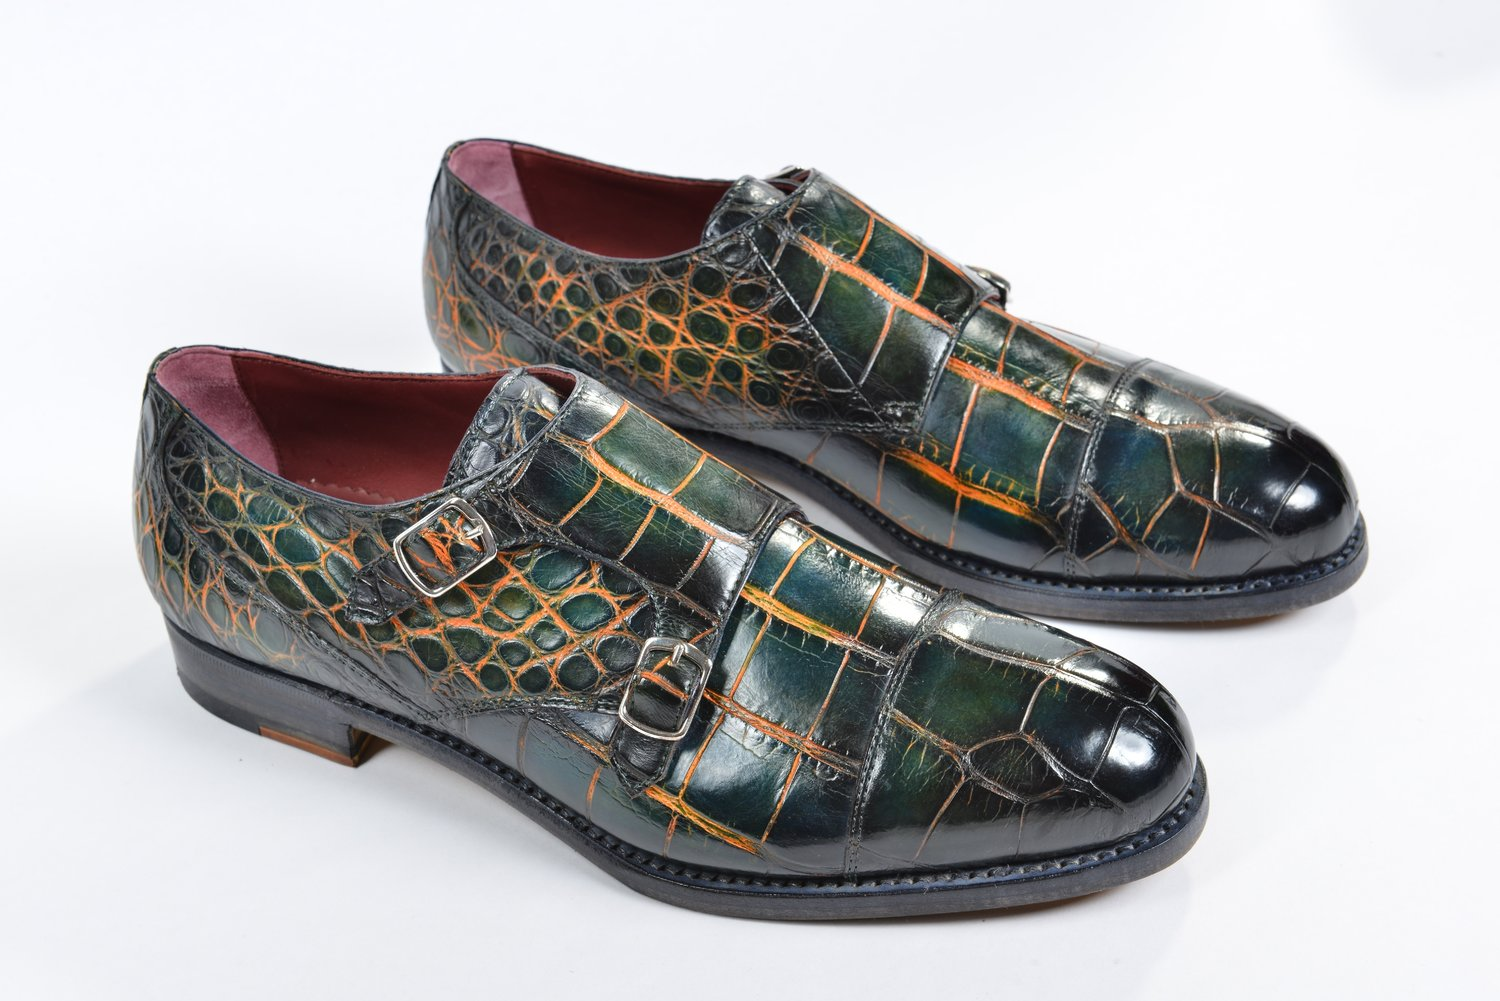 crocodile-leather-shoes-matteo-perin.jpg